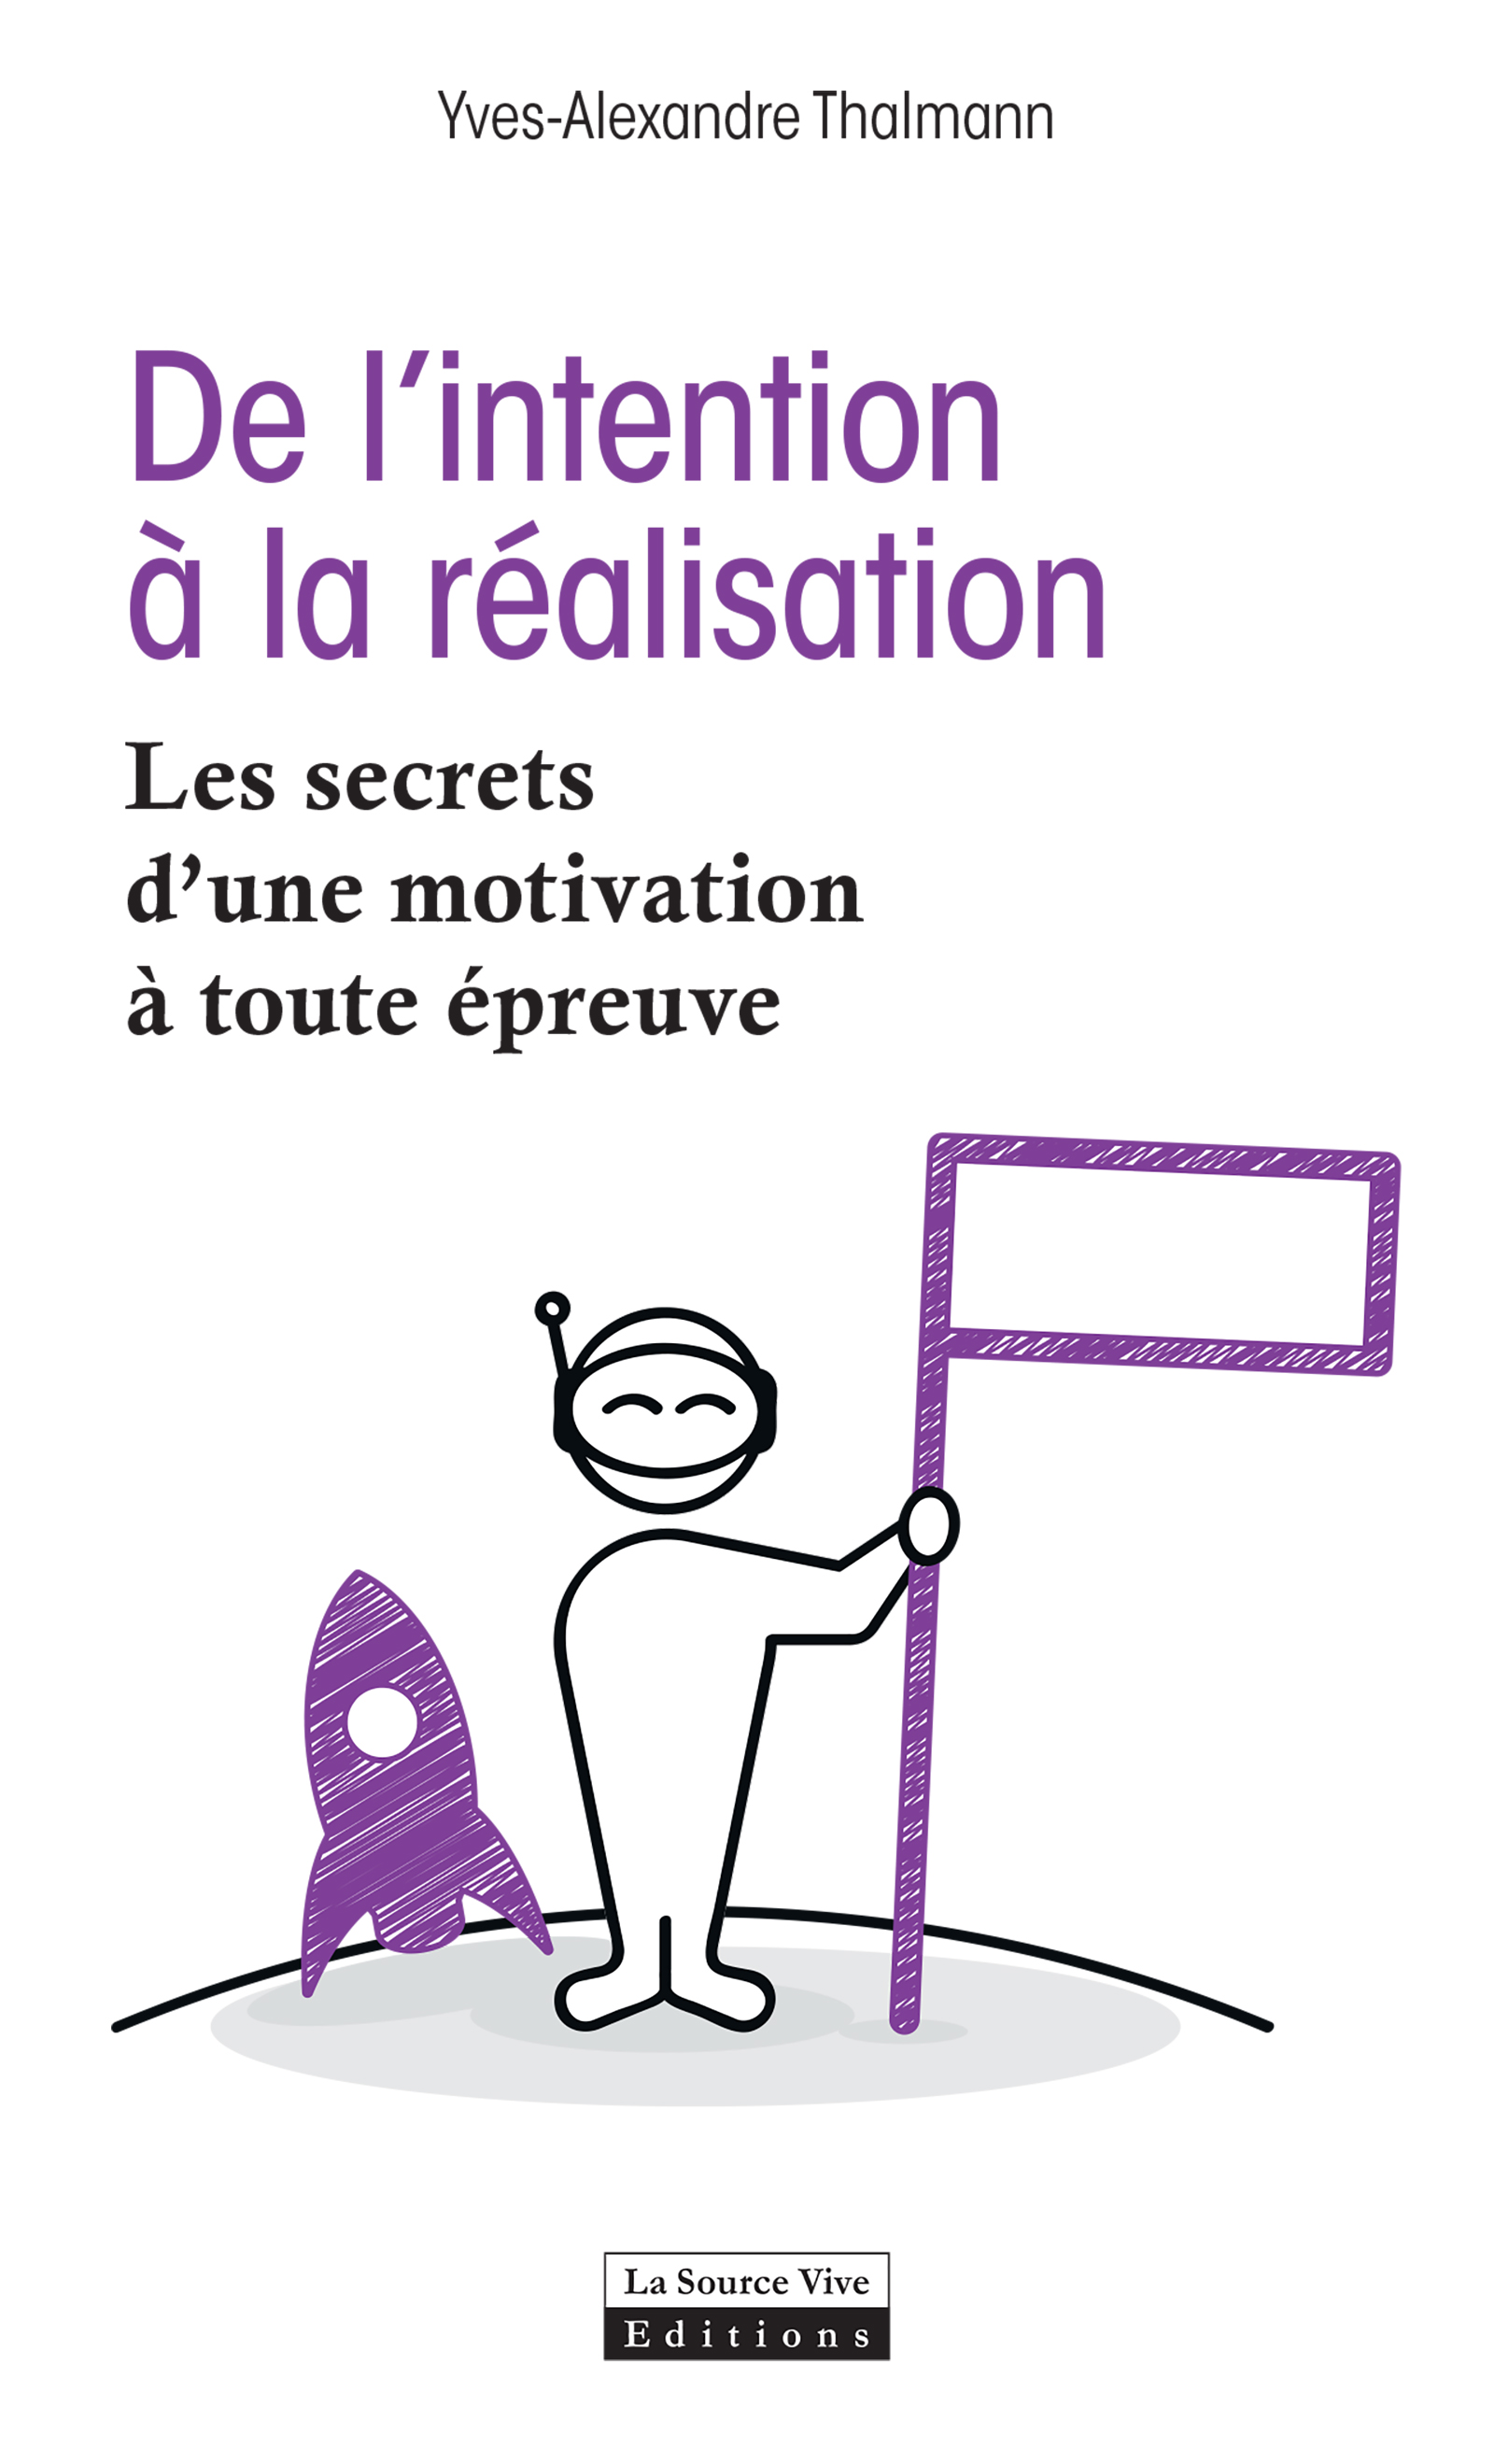 De l'intention à la réalisation